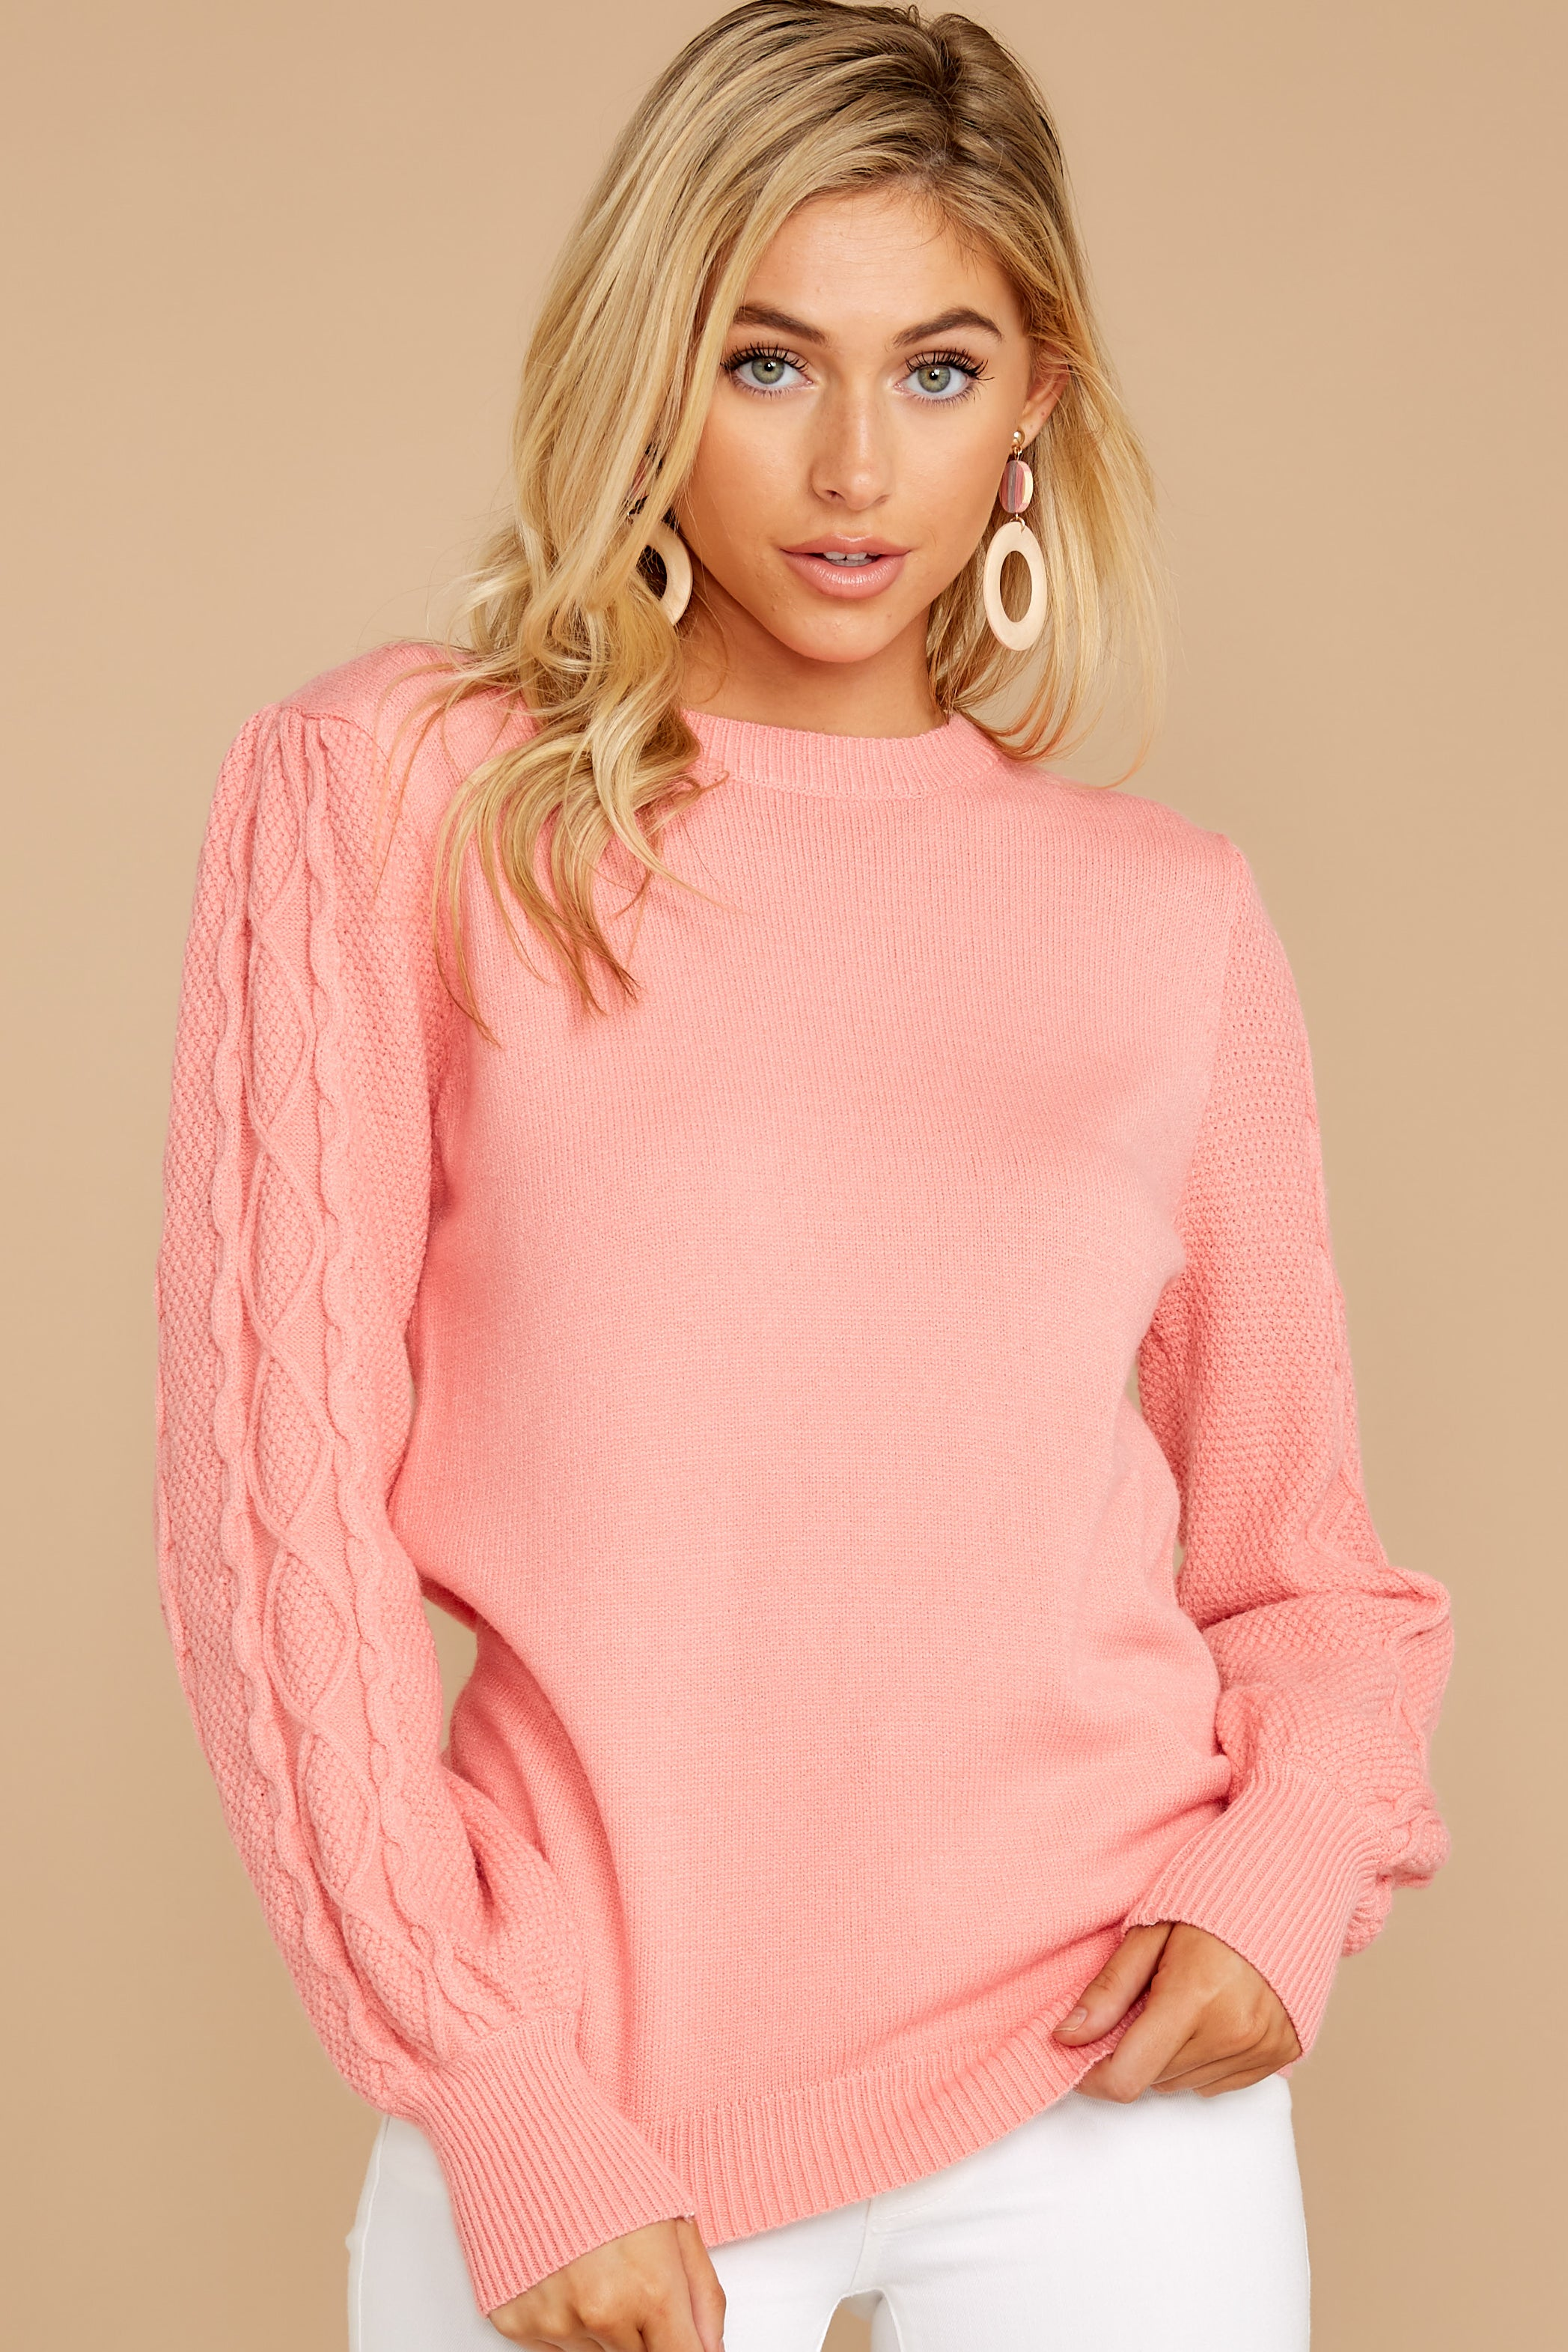 13 Wandering Through Winter Light Pink Sweater at reddressboutique.com